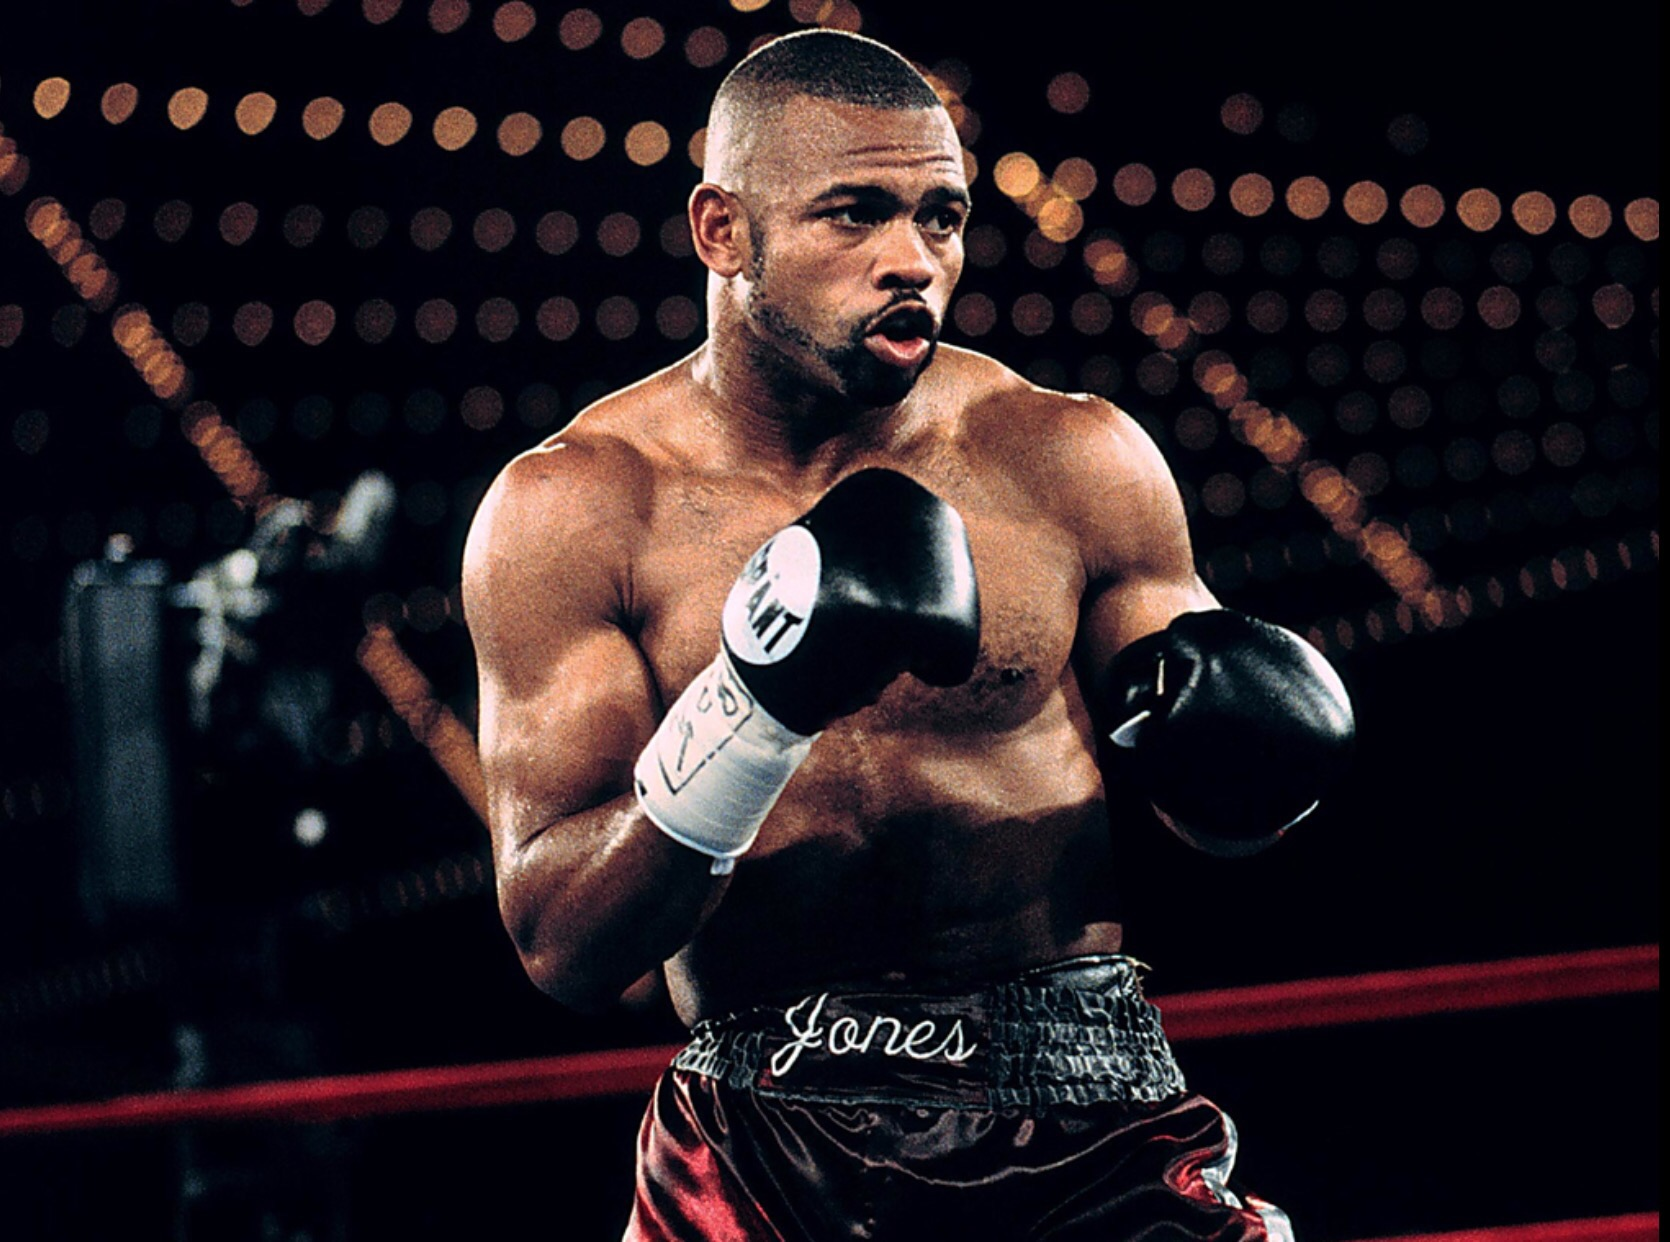 roy jones jr fight boxing boxer worth fights bobby quotes gunn training workout stance boxers muscle famous legend amateur street